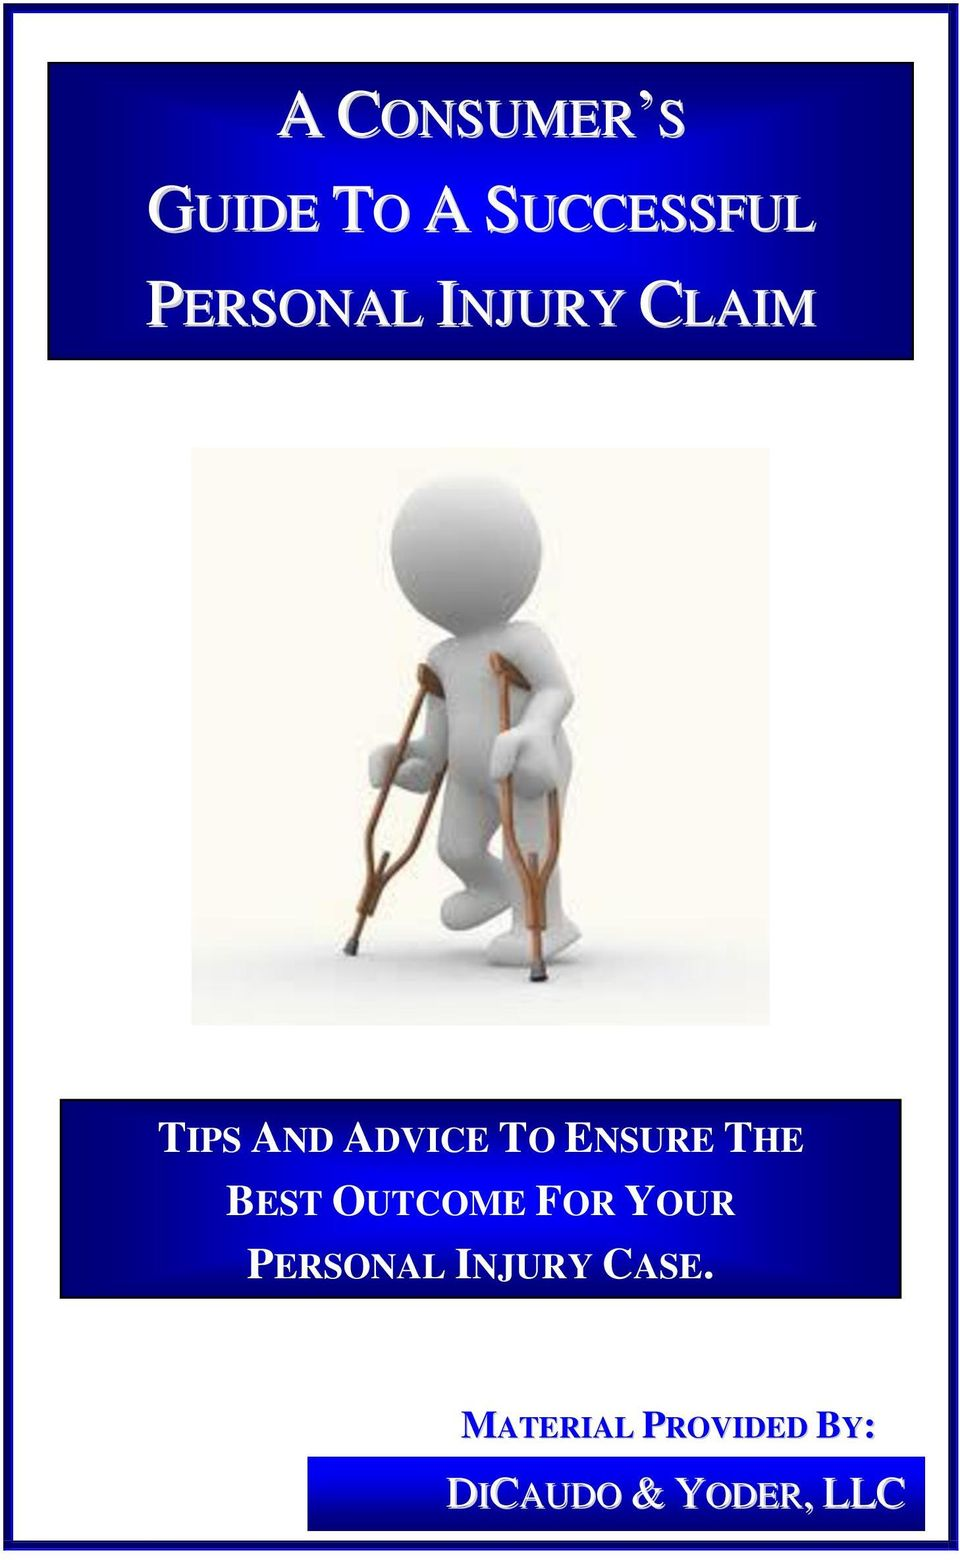 BEST OUTCOME FOR YOUR PERSONAL INJURY CASE.